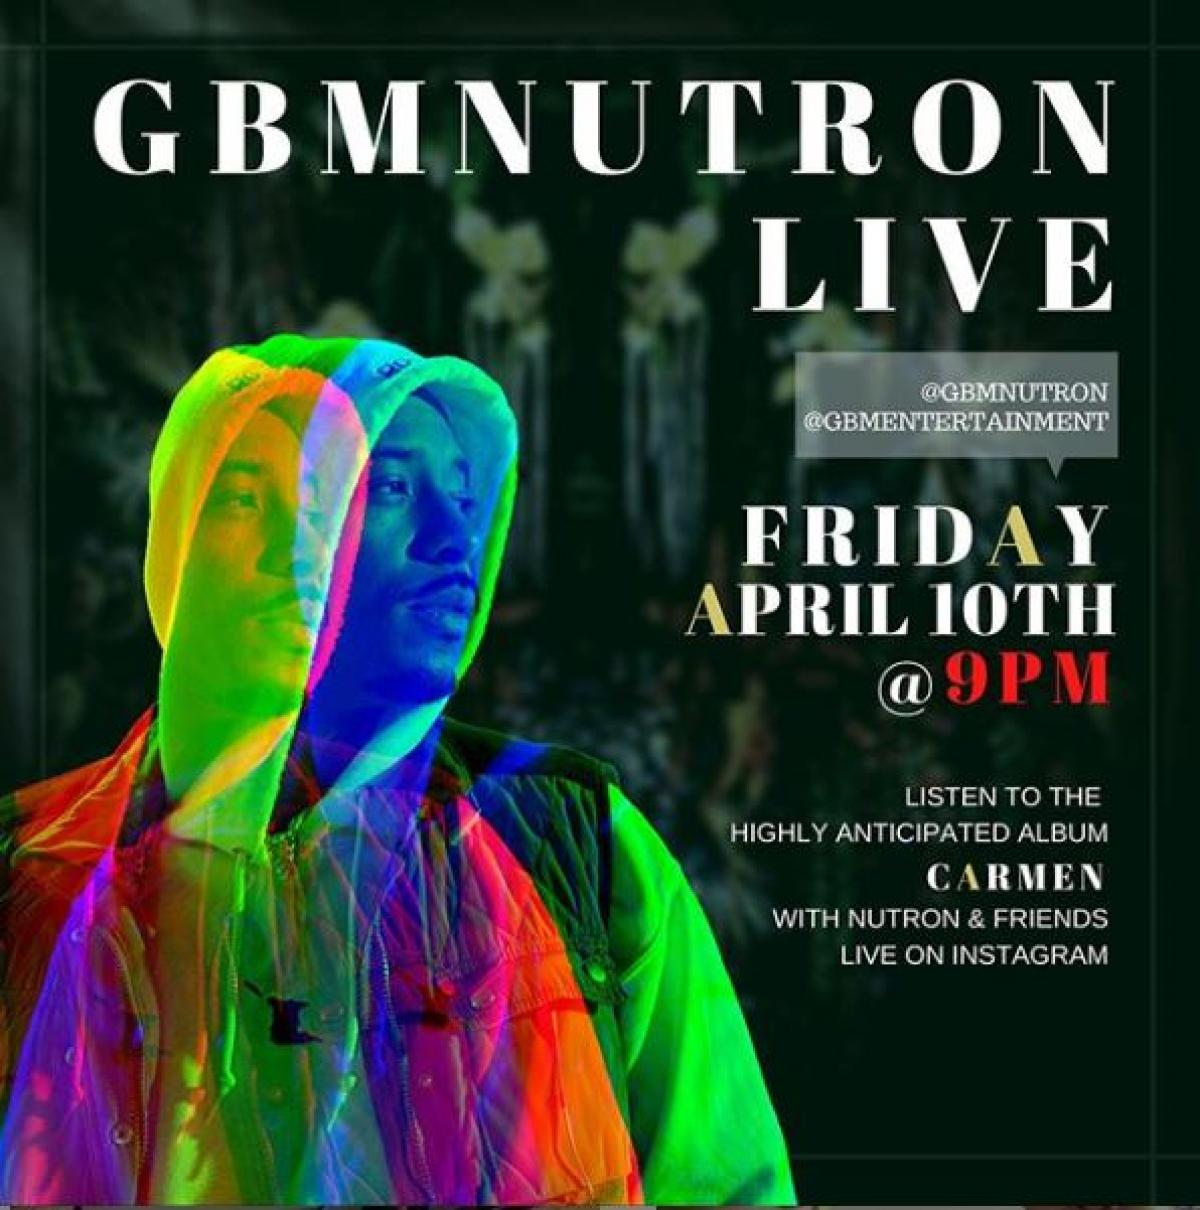 GBM Nutron Live flyer or graphic.